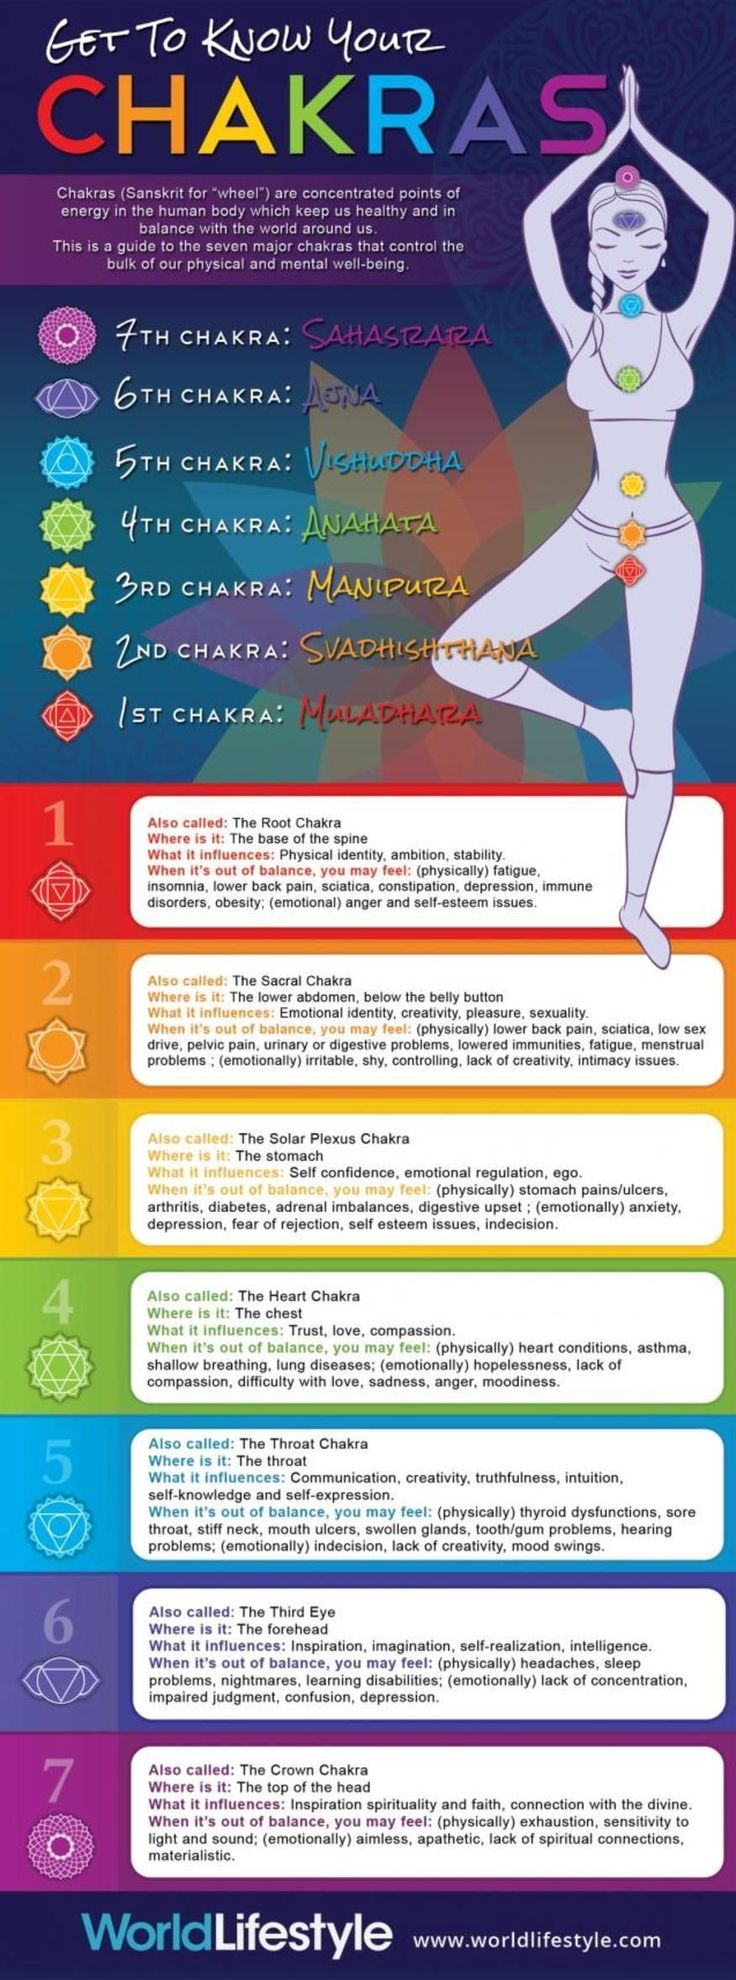 Do you know your chakras? Well get to know it with this little cheat sheet! Visit Walgreens.com to get all the yoga and Pilates equipment you need. www.bridgettdonkers.le-vel.com #KnowingYourChakras